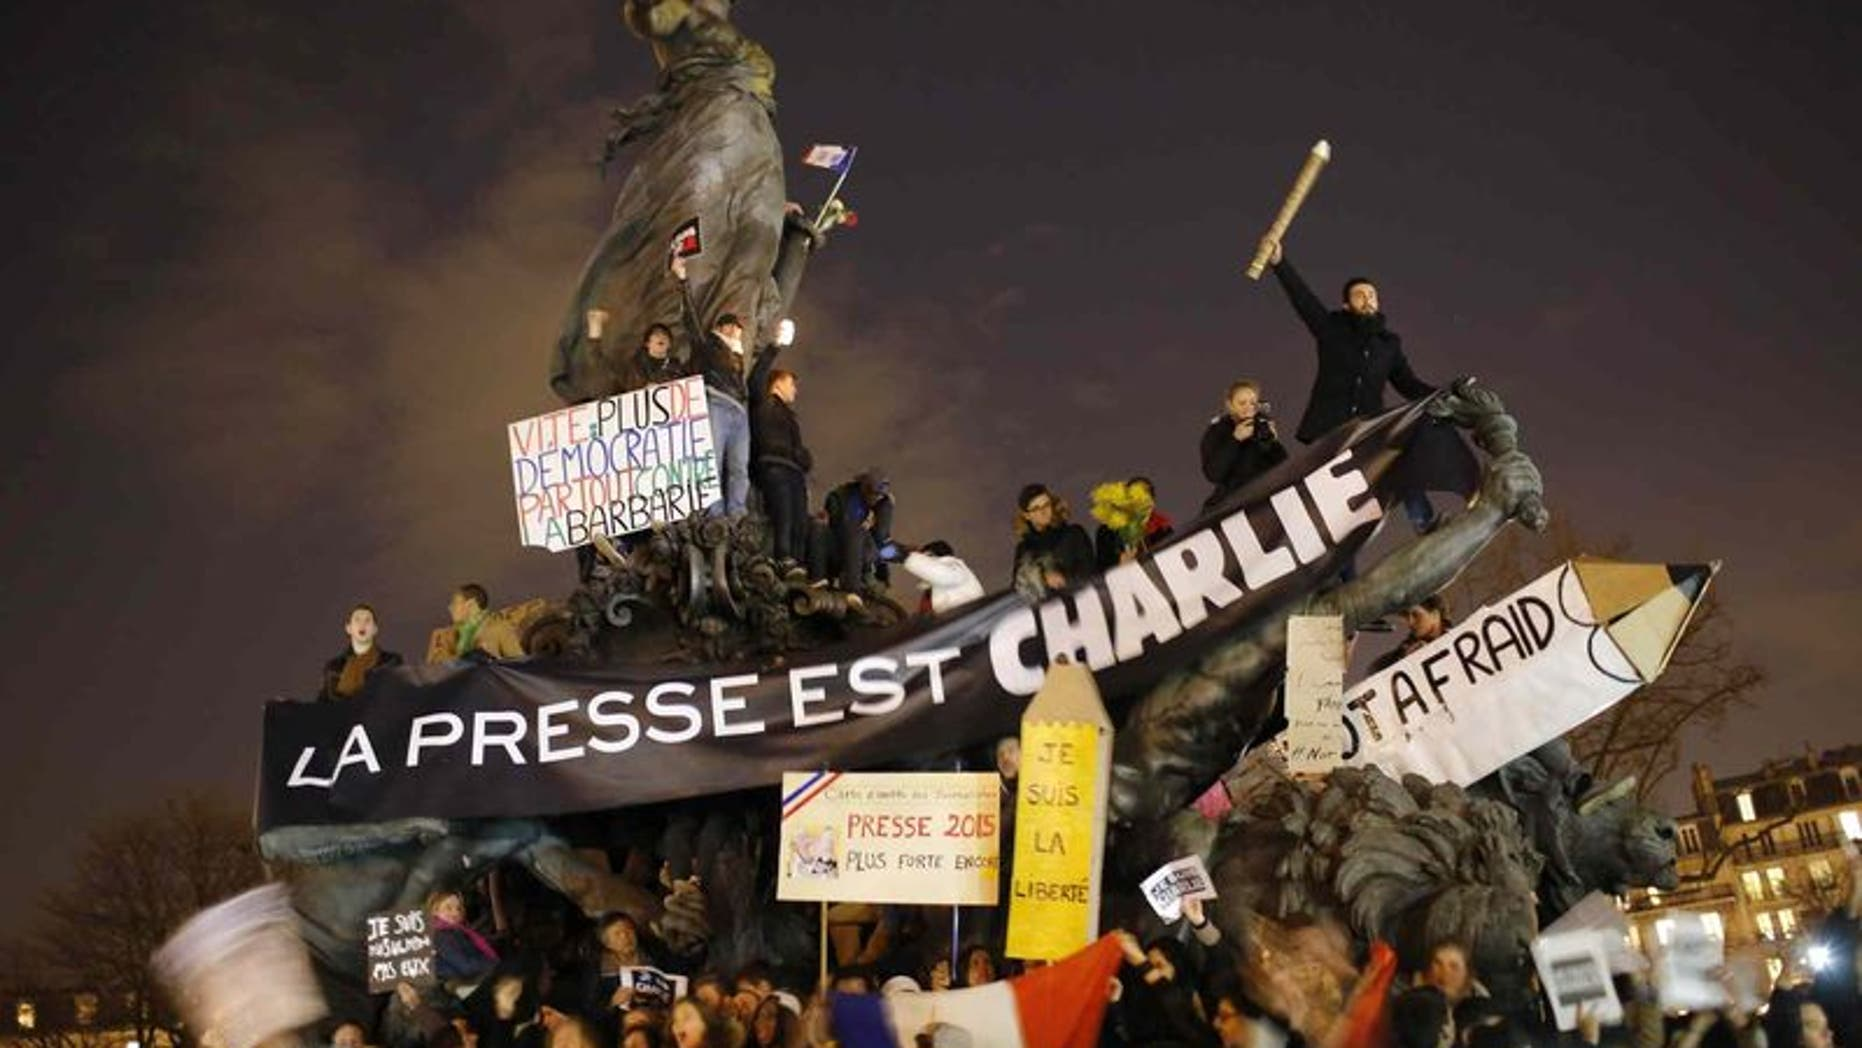 Hundreds of thousands of people marched through Paris on Sunday in a massive show of unity and defiance in the face of terrorism that killed 17 people in France's bleakest moment in half a century